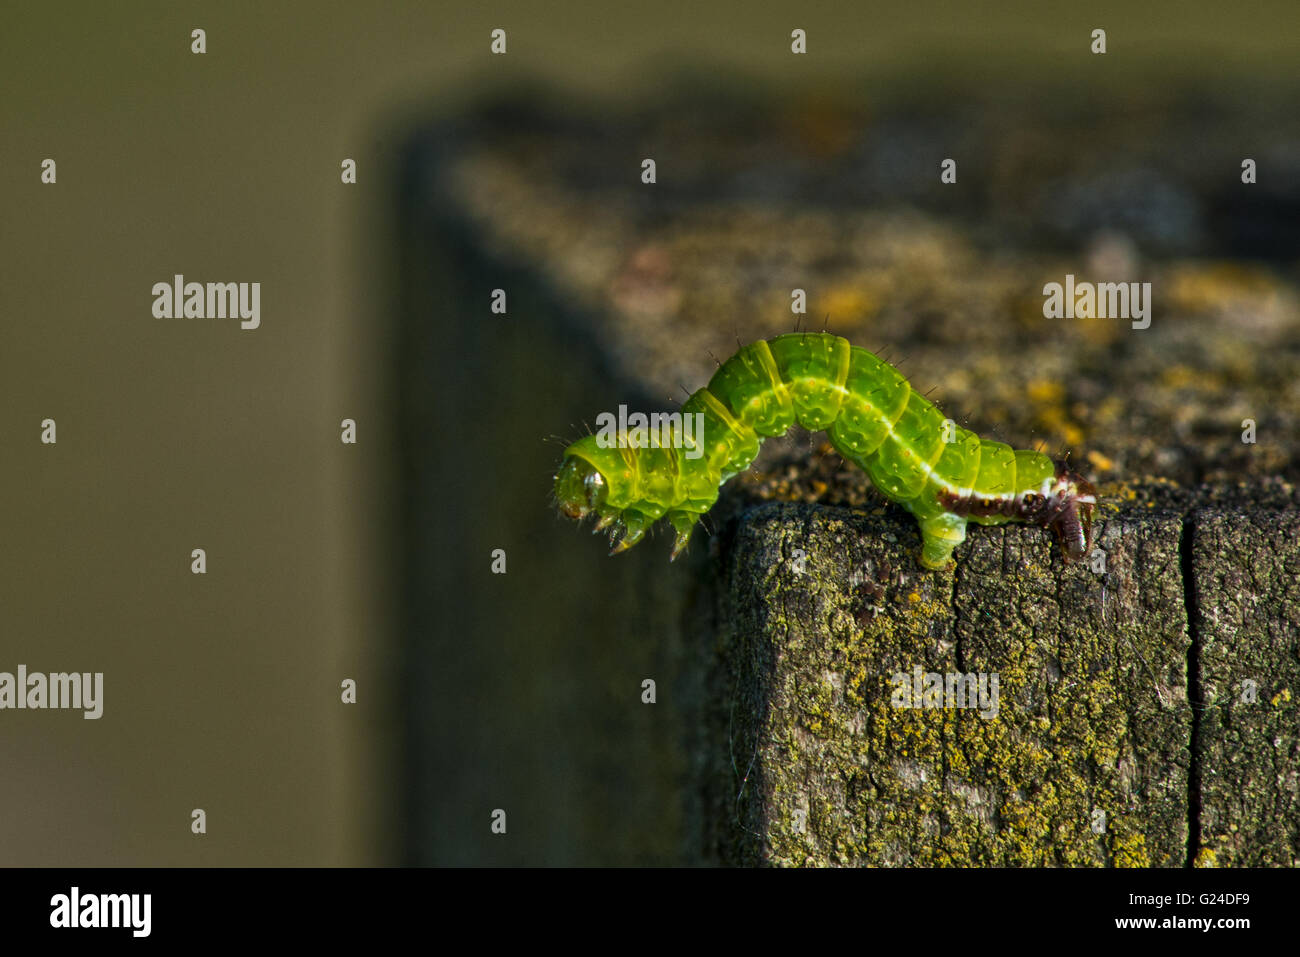 inchworm green stock photos u0026 inchworm green stock images alamy